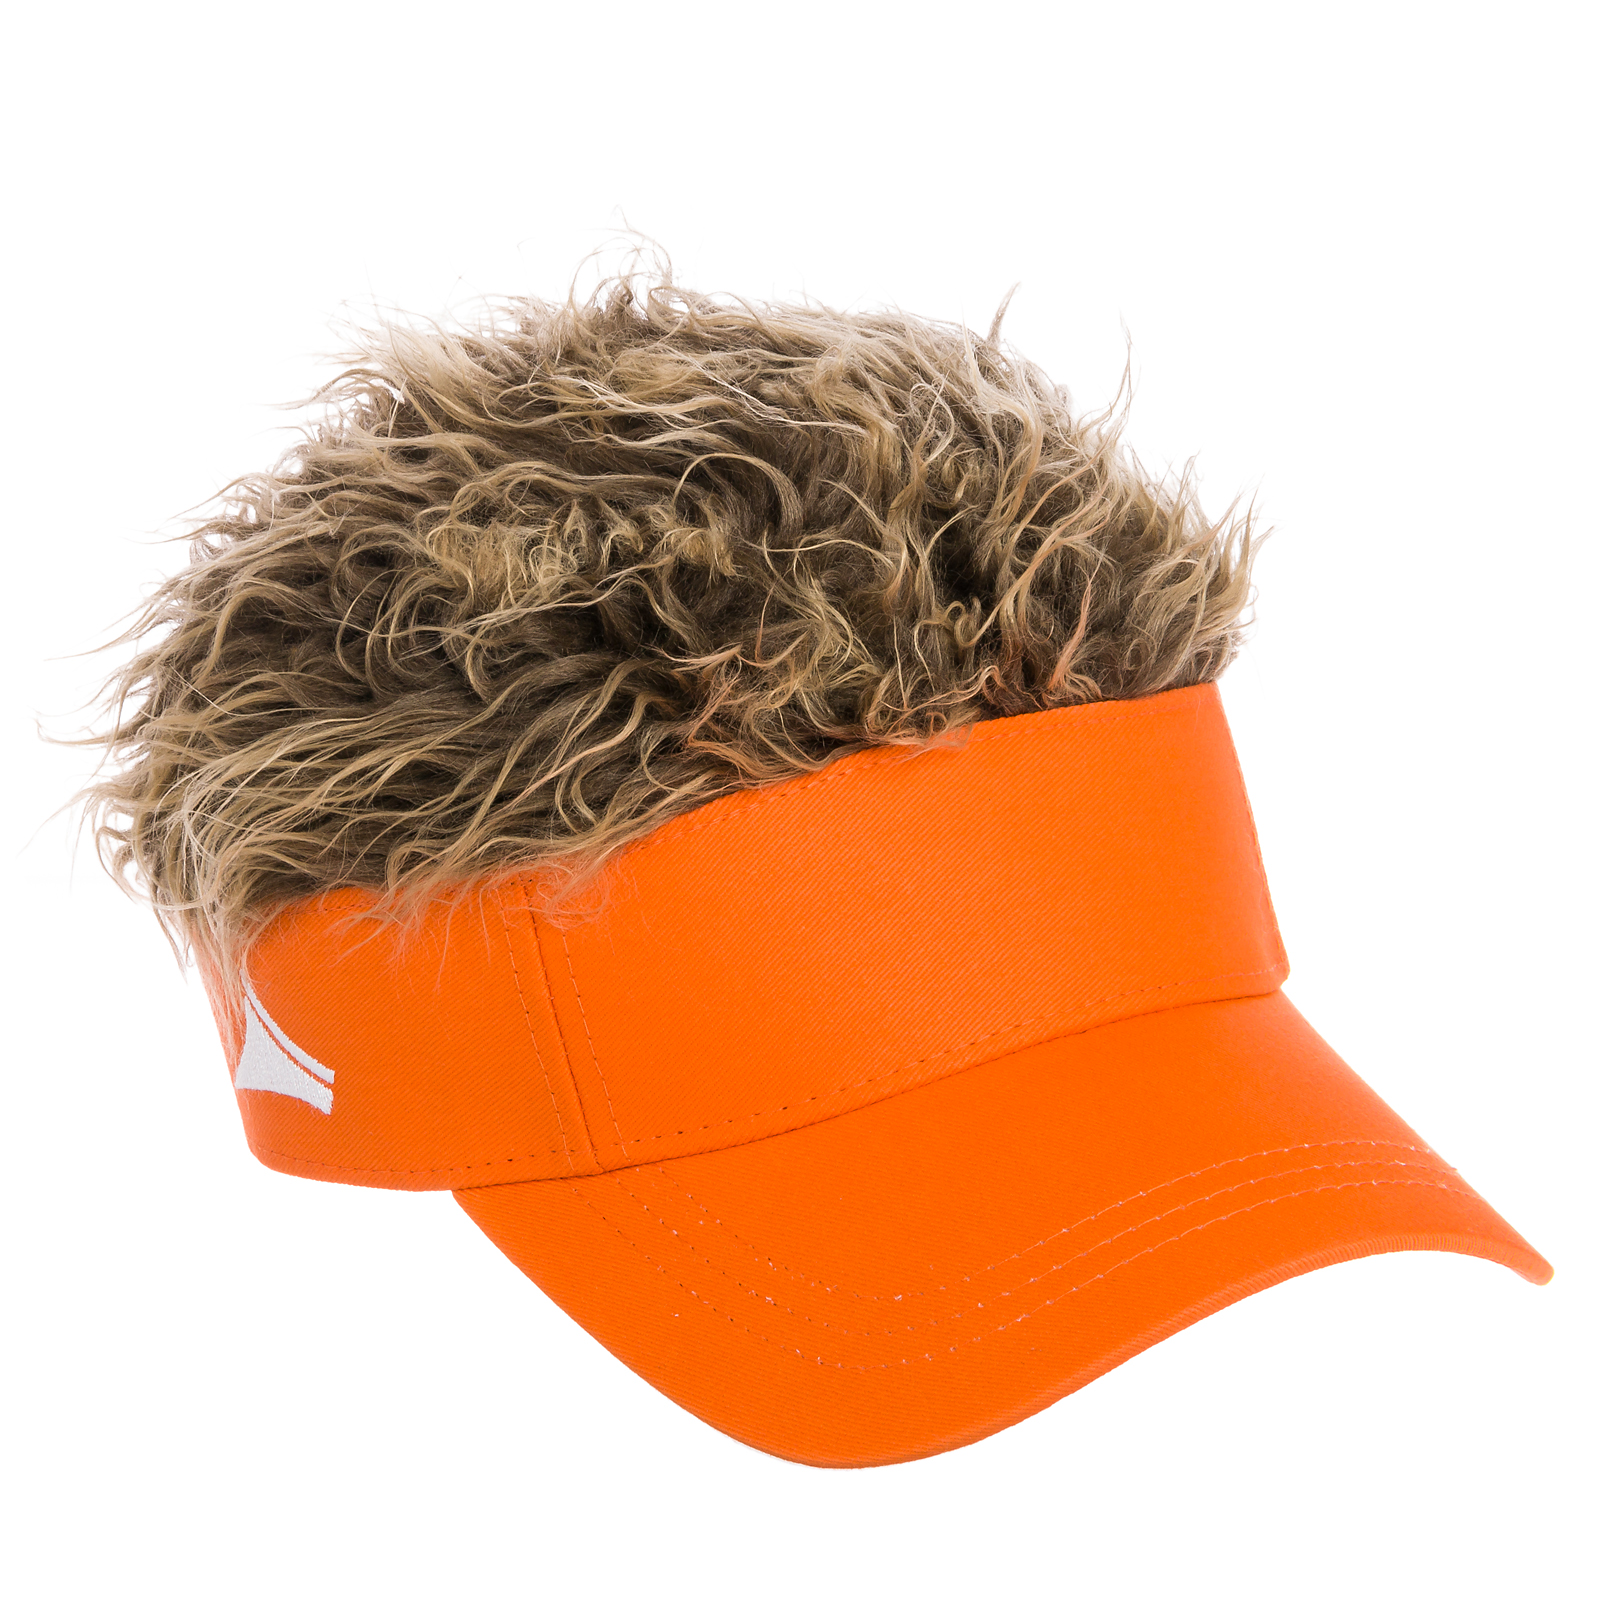 flair hair s boy s velcro visor hat cap w hair wig new